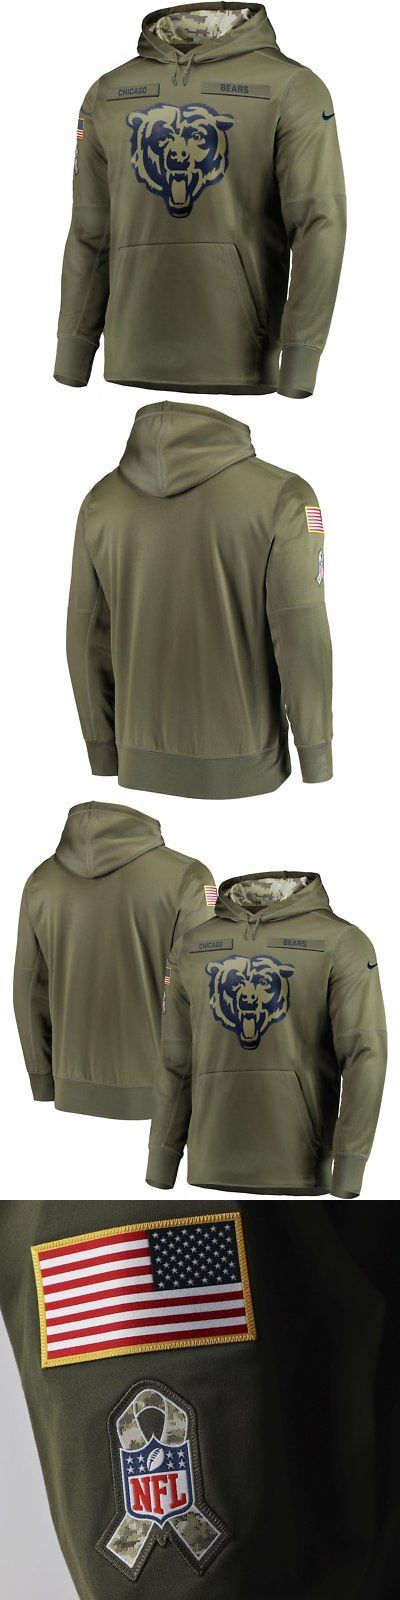 748f4b1f3 Clothing 21218  Mens Xl Nike Chicago Bears 2018 Salute To Service Hoodie  Army Military Green -  BUY IT NOW ONLY   249.99 on  eBay  clothing  chicago   bears ...